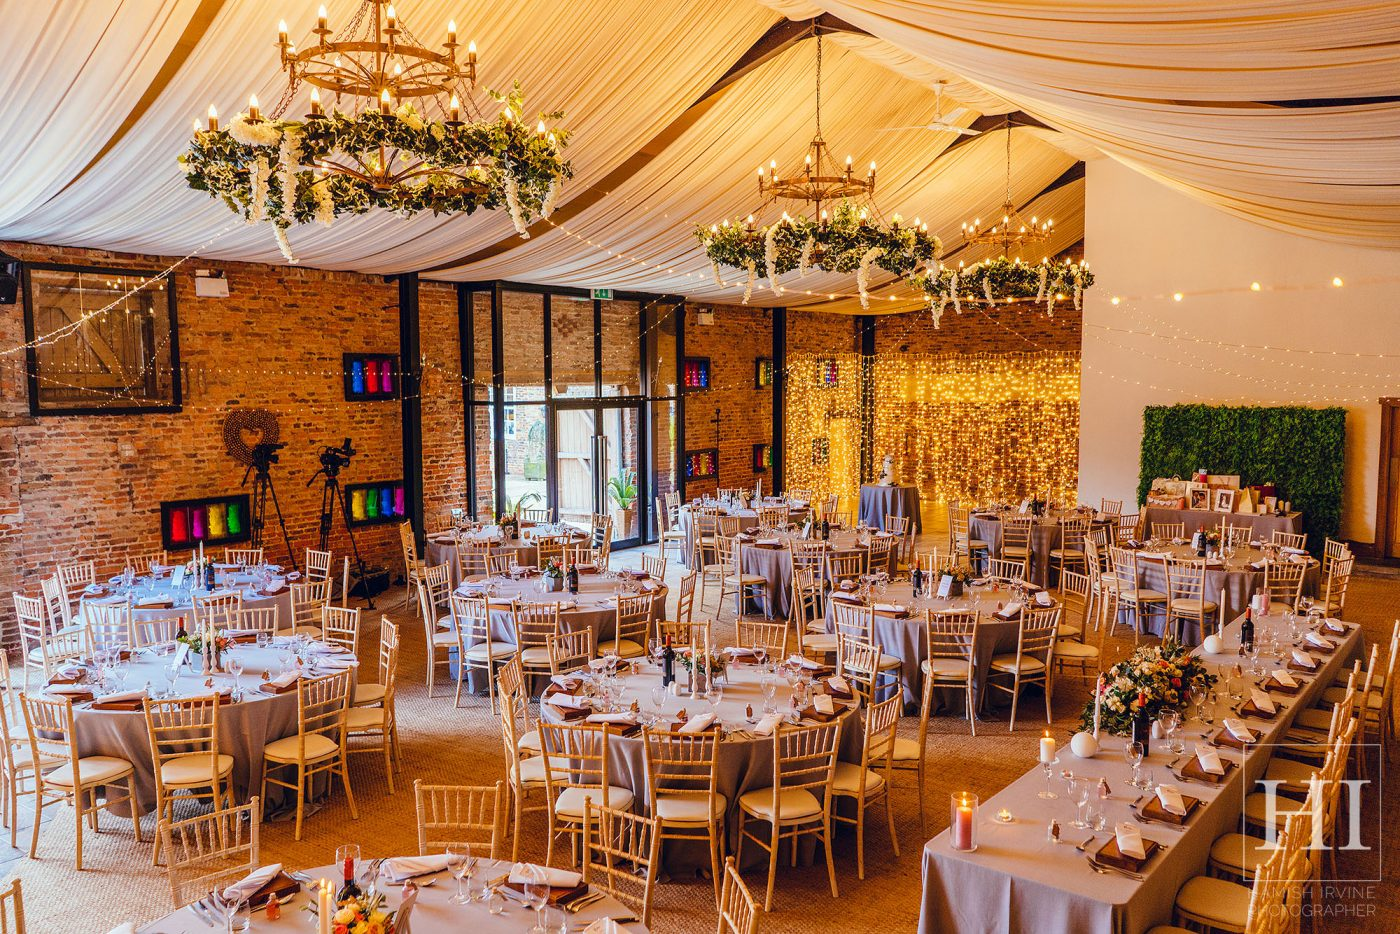 Hornington Manor Wedding Venue